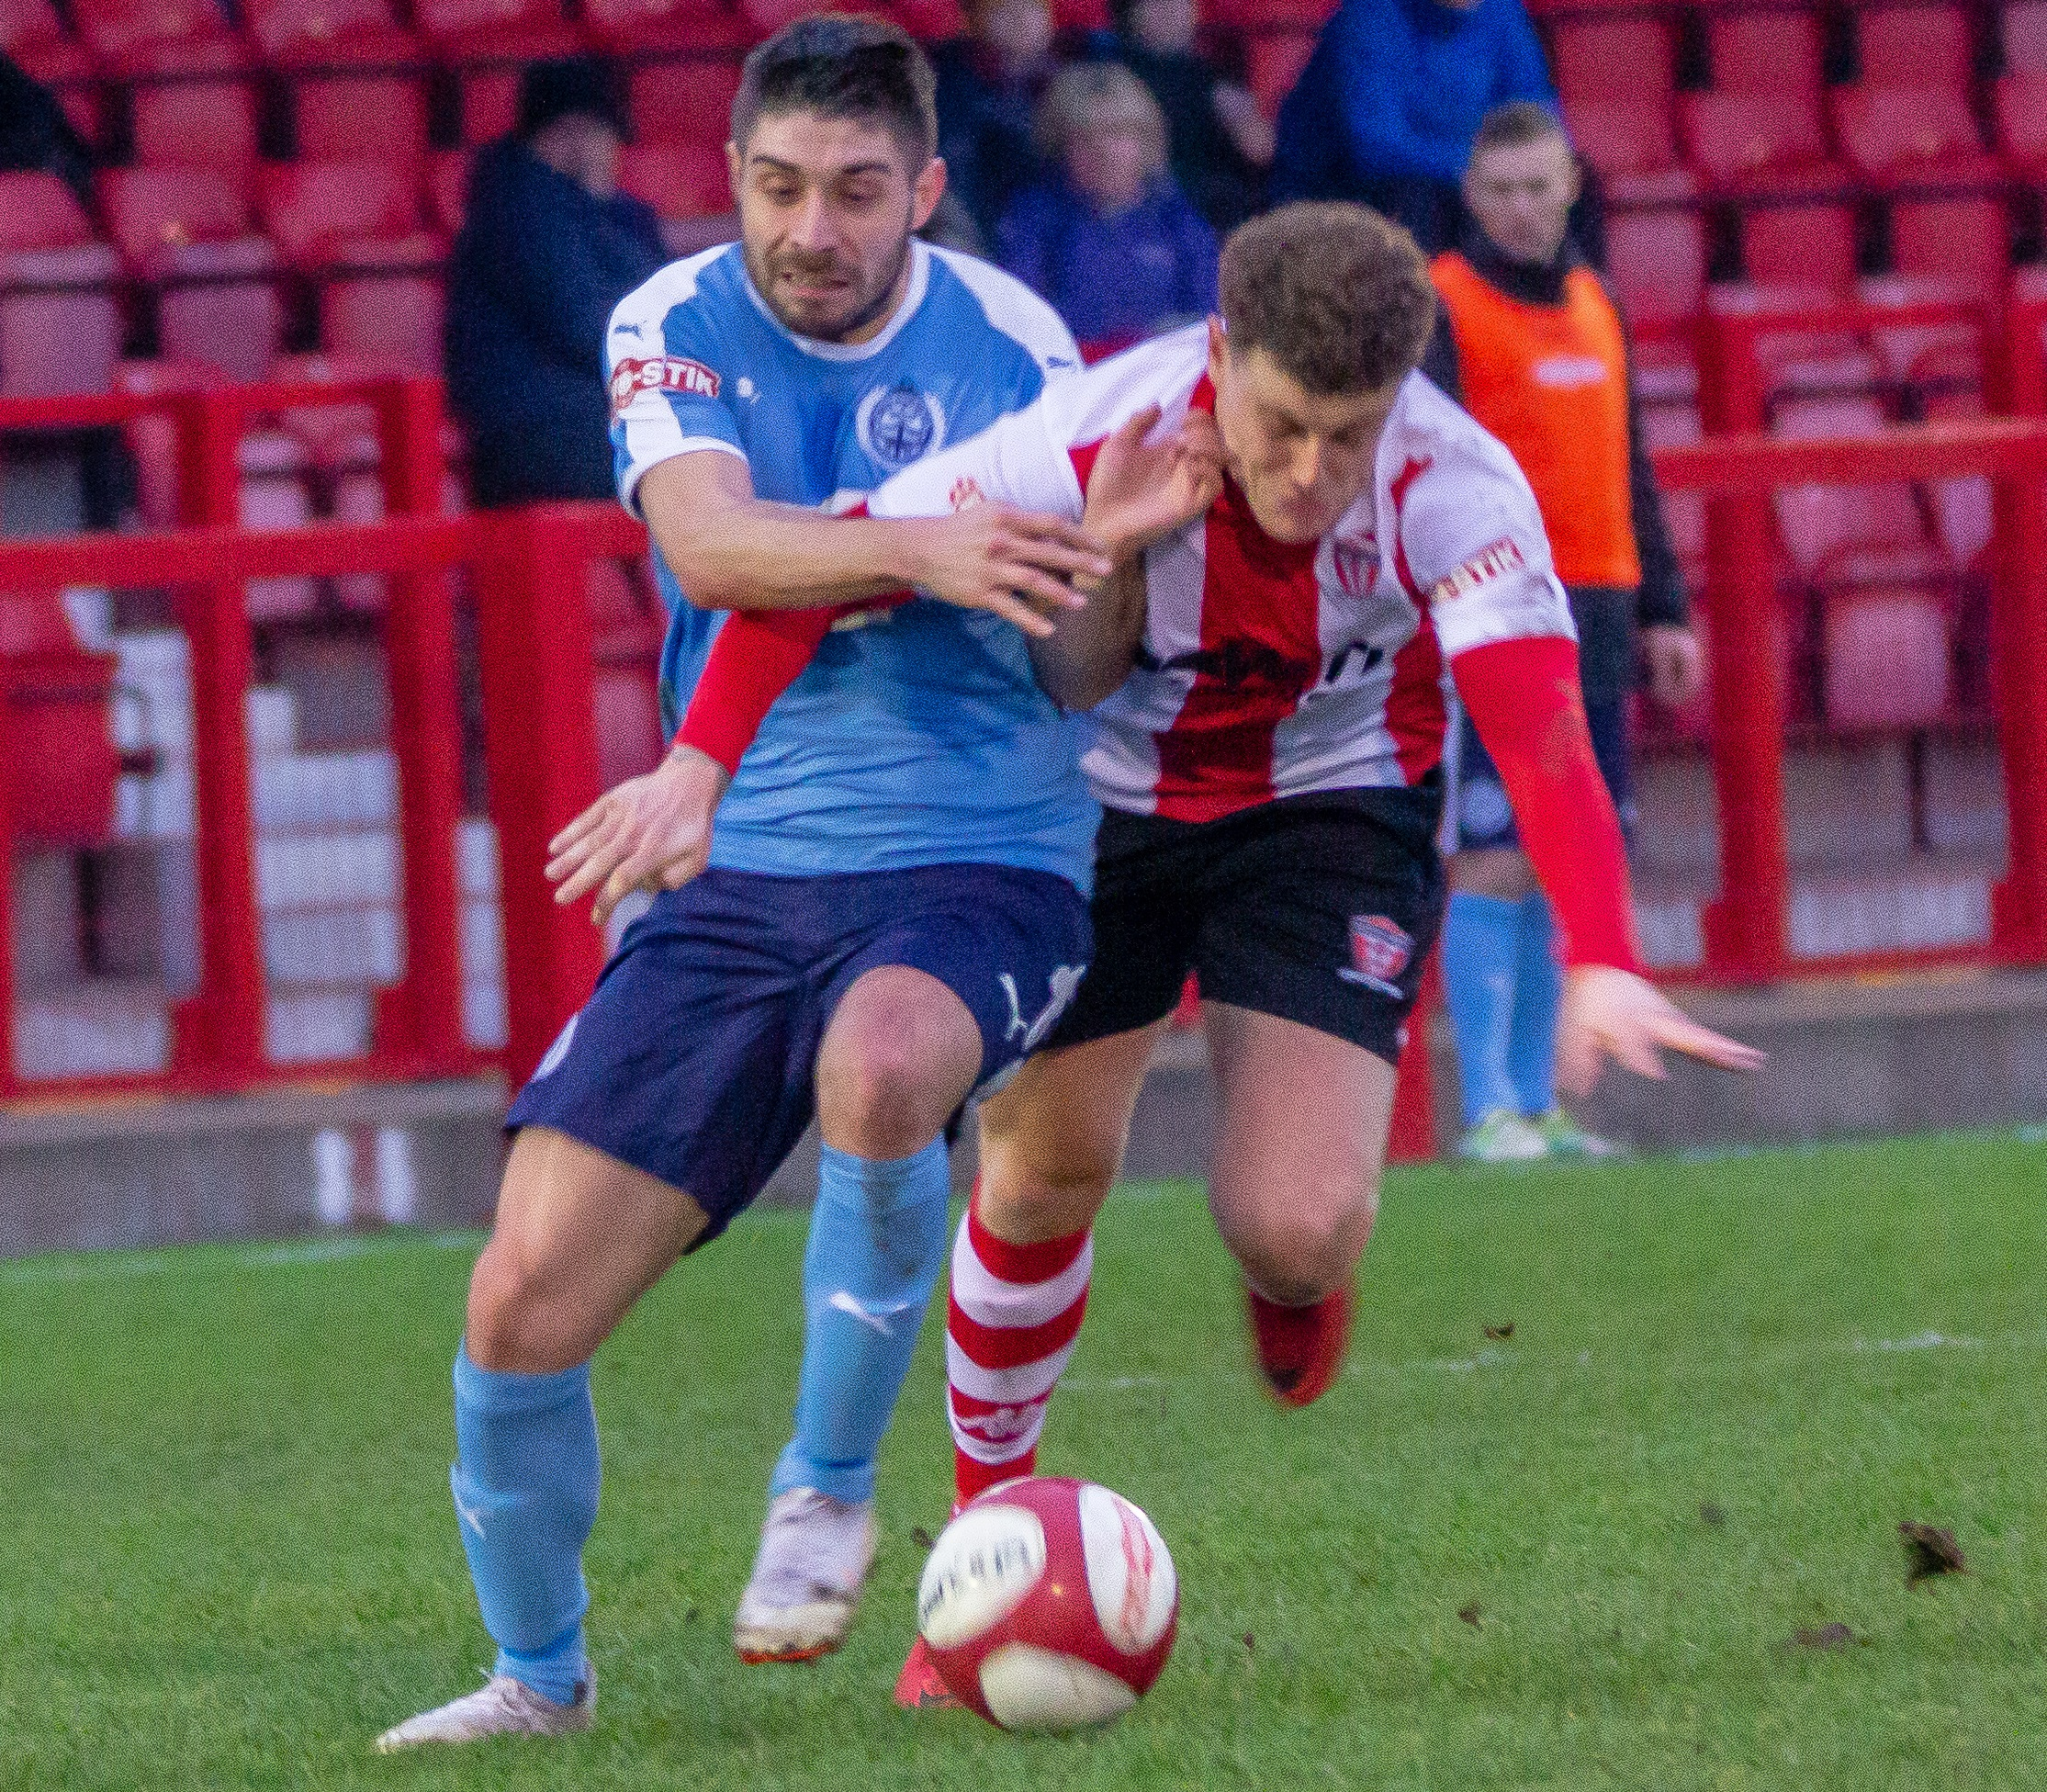 South Shields attacker Josh Gillies, left, battles with Witton Albion's James Foley for possession during their team Northern Premier League meeting at Wincham Park on Saturday. Picture: Karl Brooks Photography